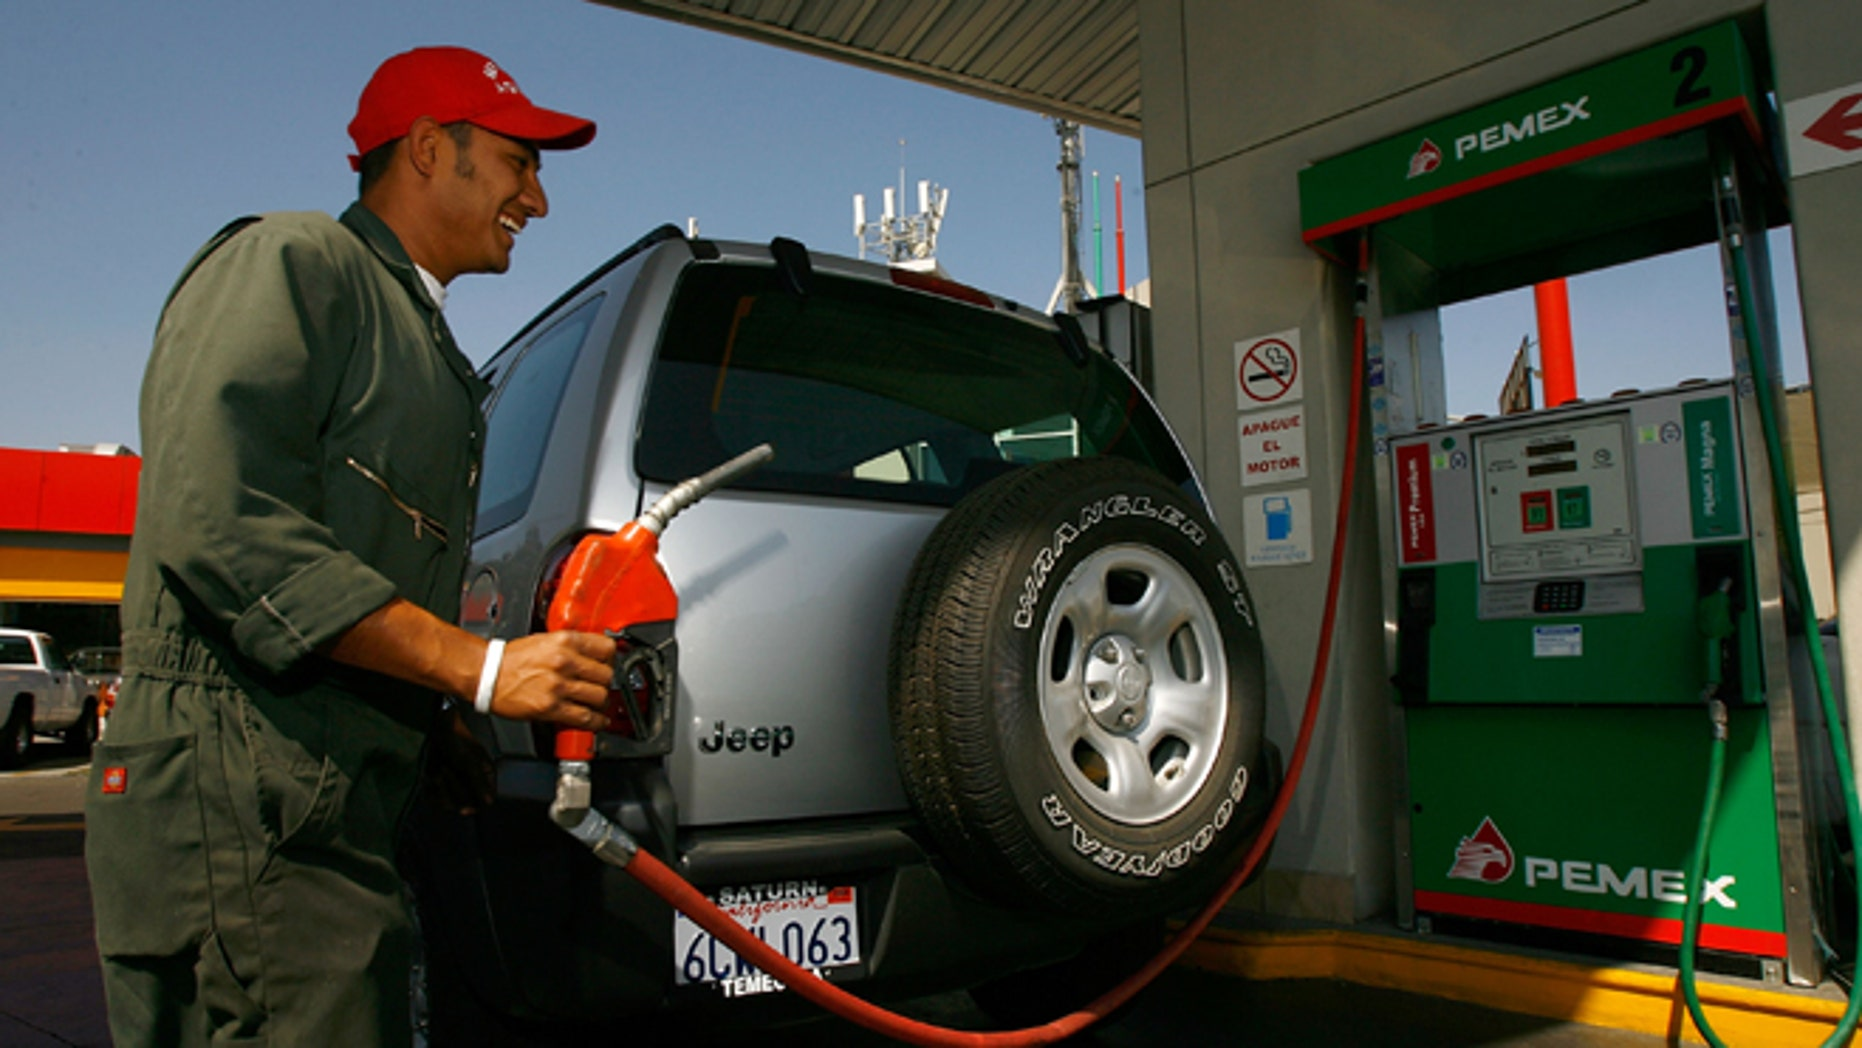 TIJUANA, MEXICO - JUNE 27:  A Pemex gas station attendant fills a car registered with California license plates on June 27, 2008 in Tijuana, Mexico. With the cost of gasoline in California around $4.60 per gallon, many drivers are buying their fuel in Mexico for about $3.20. There is a price to pay for cheaper gas though. Mexican gas is formulated with more sulfur than California gas and that can damage the emission control equipment on US cars, causing them to fail emissions tests and leading to expensive repairs. In addition, unless a driver has other business in Mexico, part of their fuel savings will be burned up idling in a line that can easily last for hours to get back into the US.  (Photo by David McNew/Getty Images)